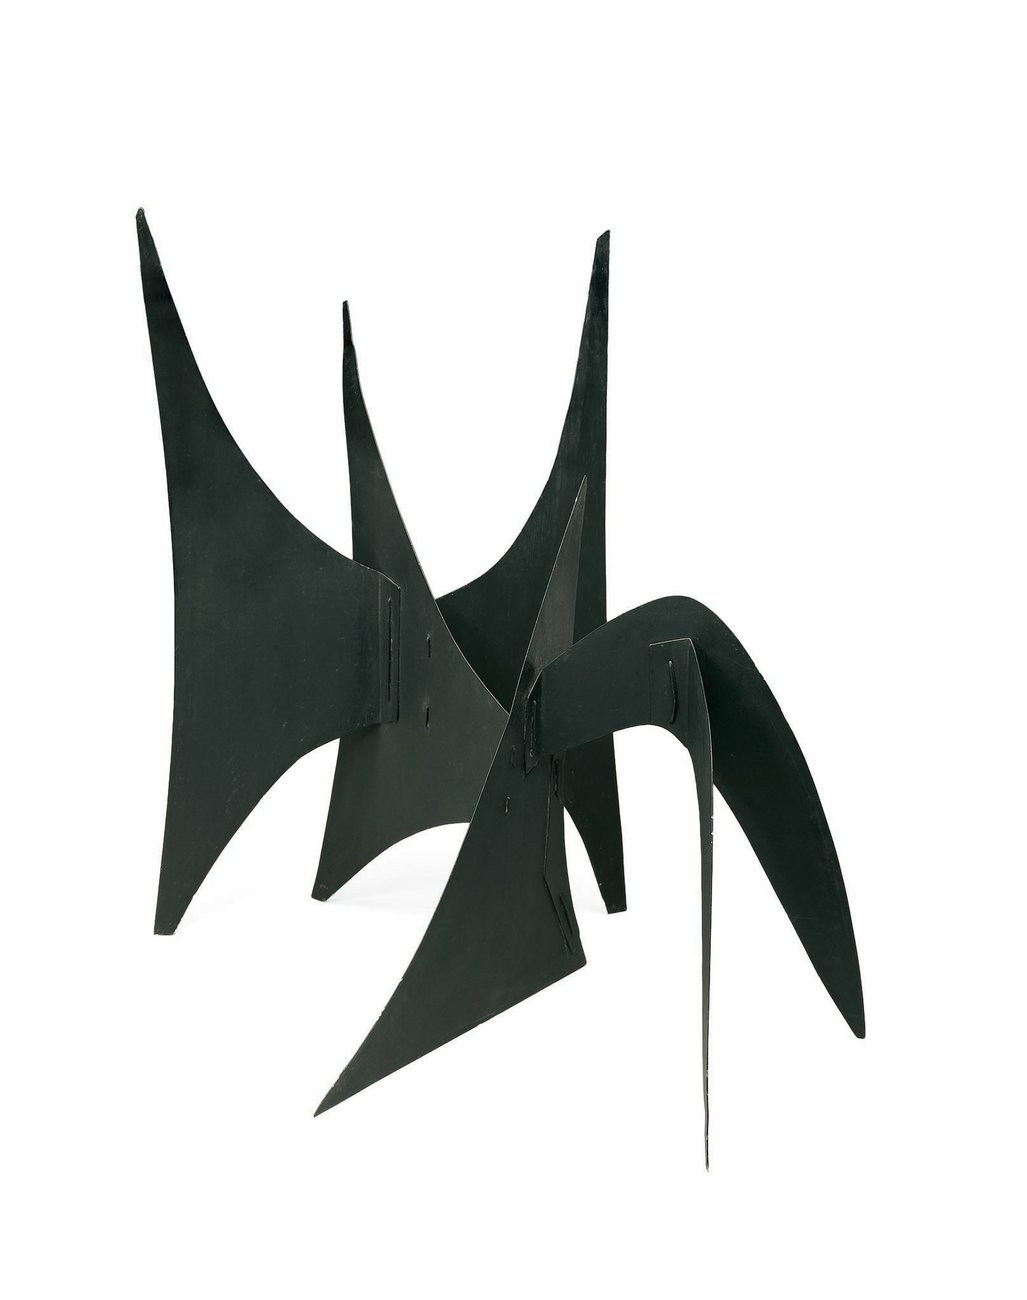 A black metal sculpture of intersecting, curvilinear planes